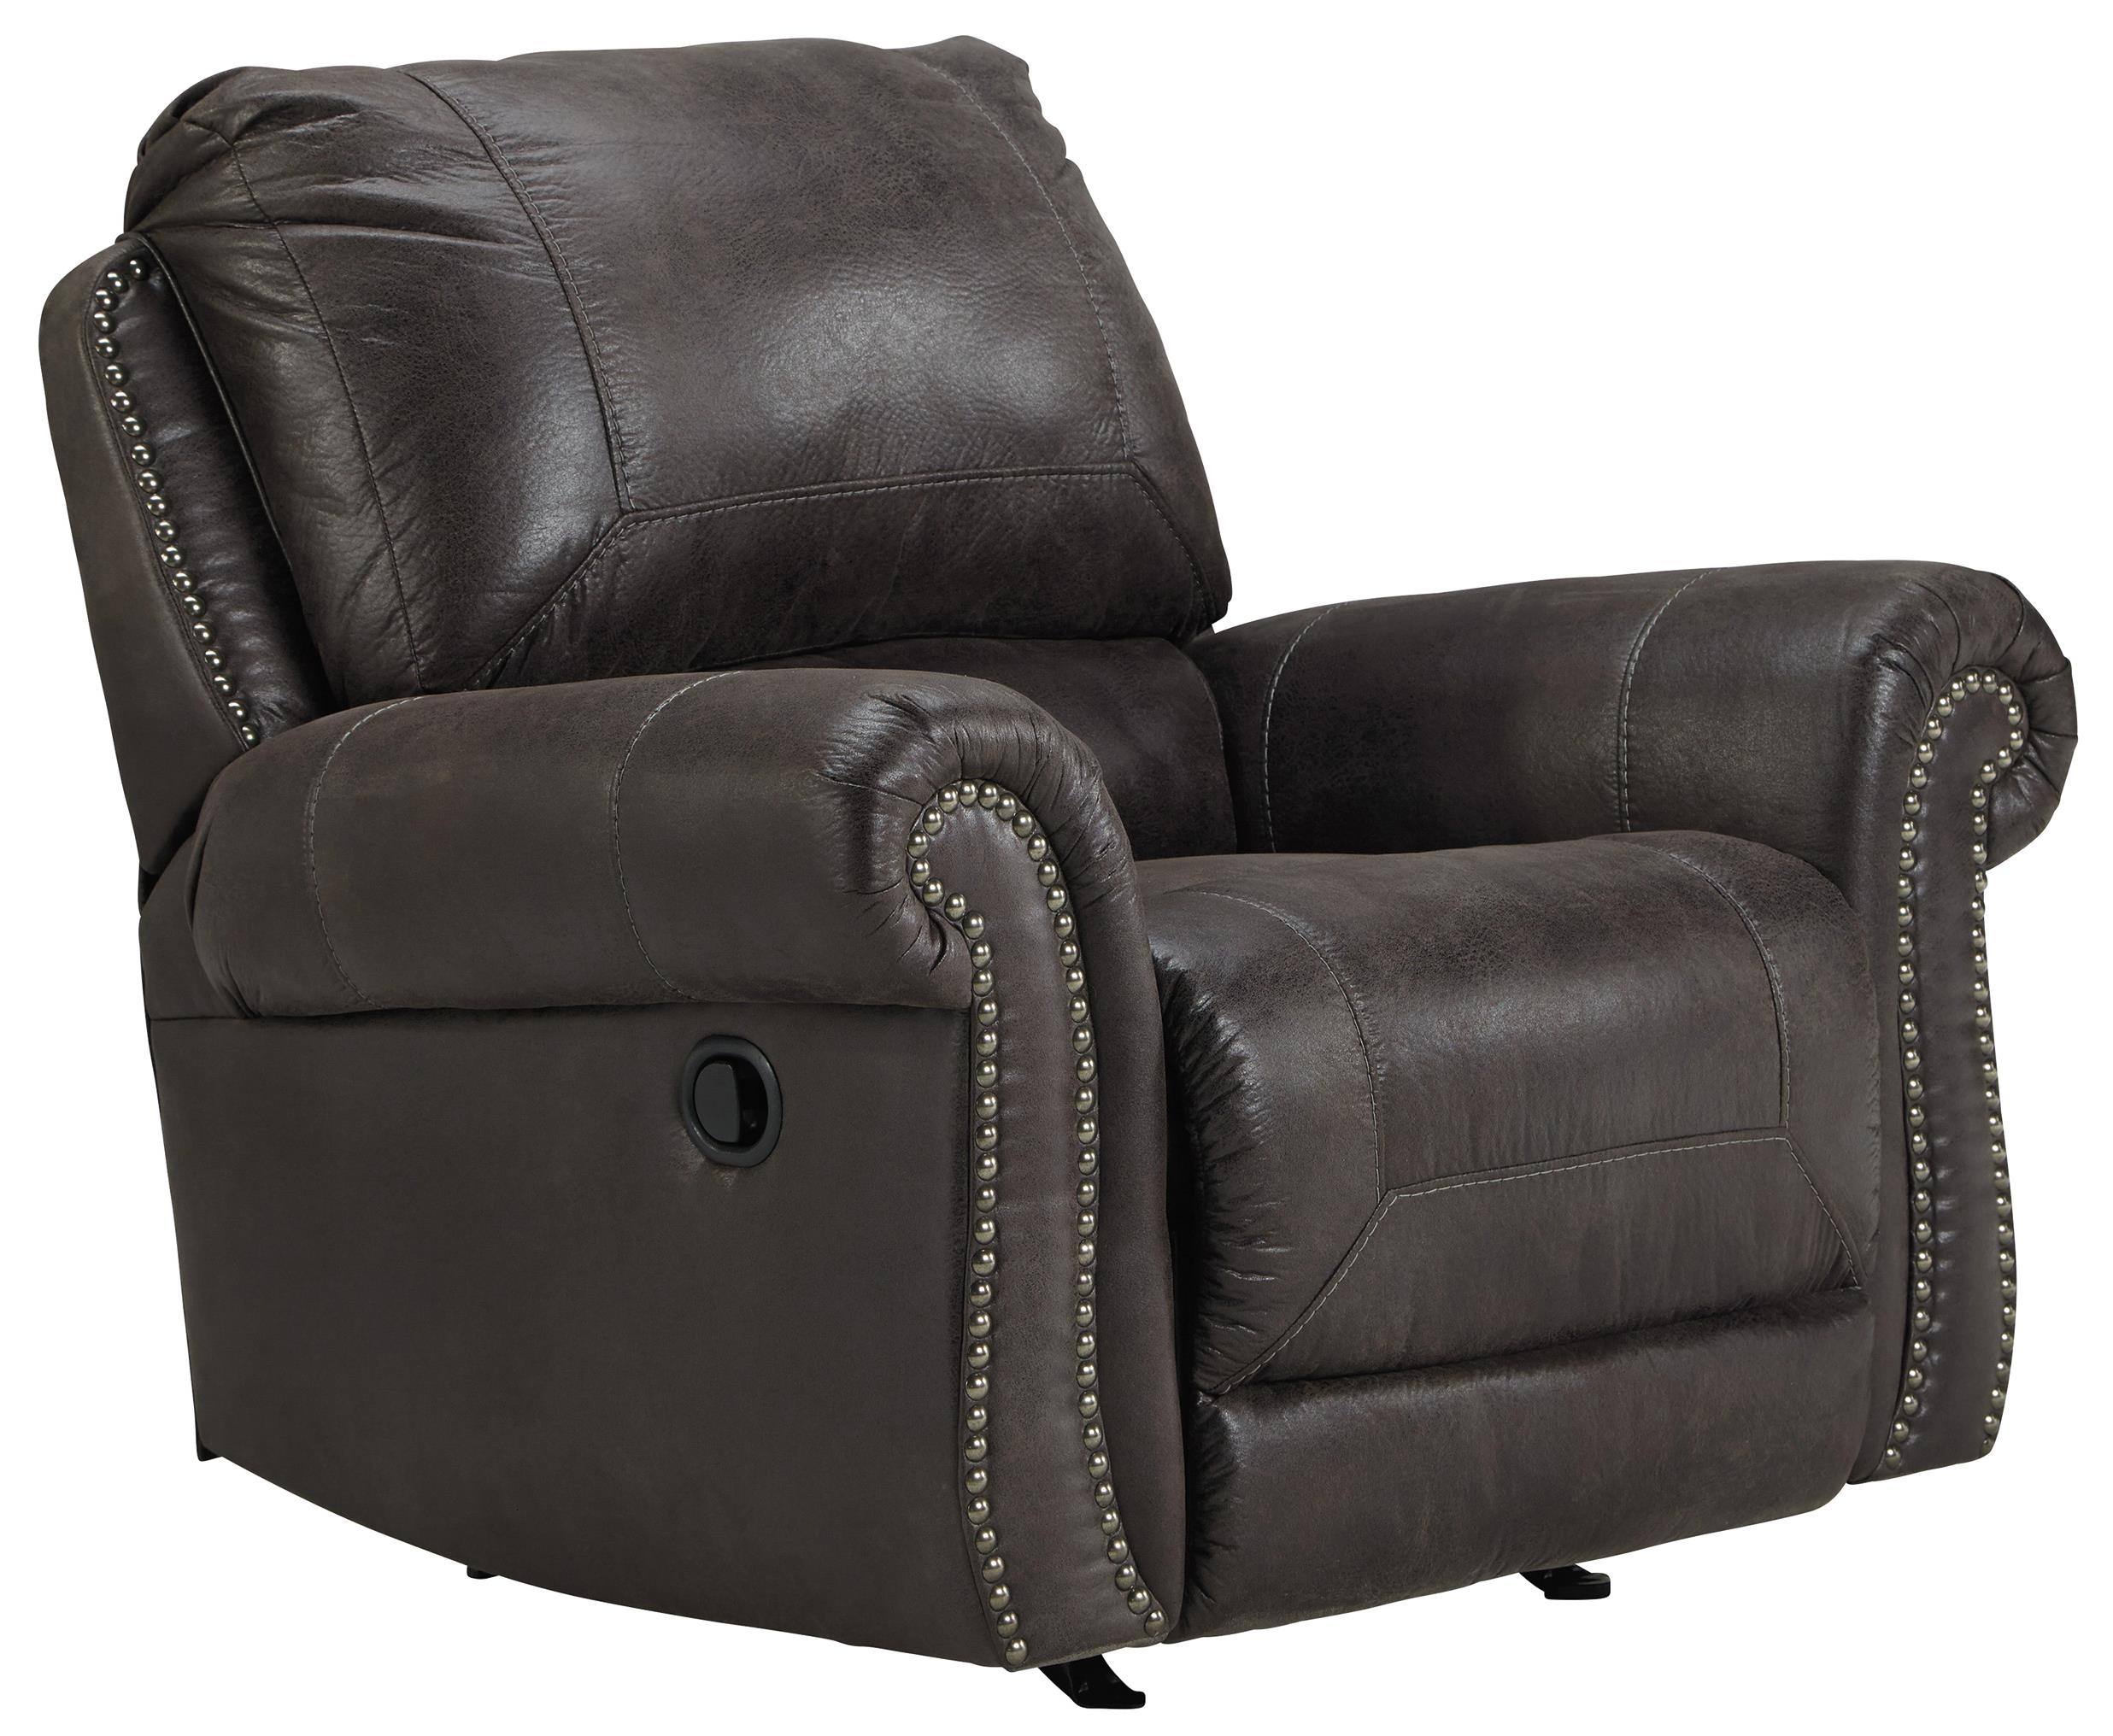 Benchcraft Breville Rocker Recliner - Item Number: 8000425